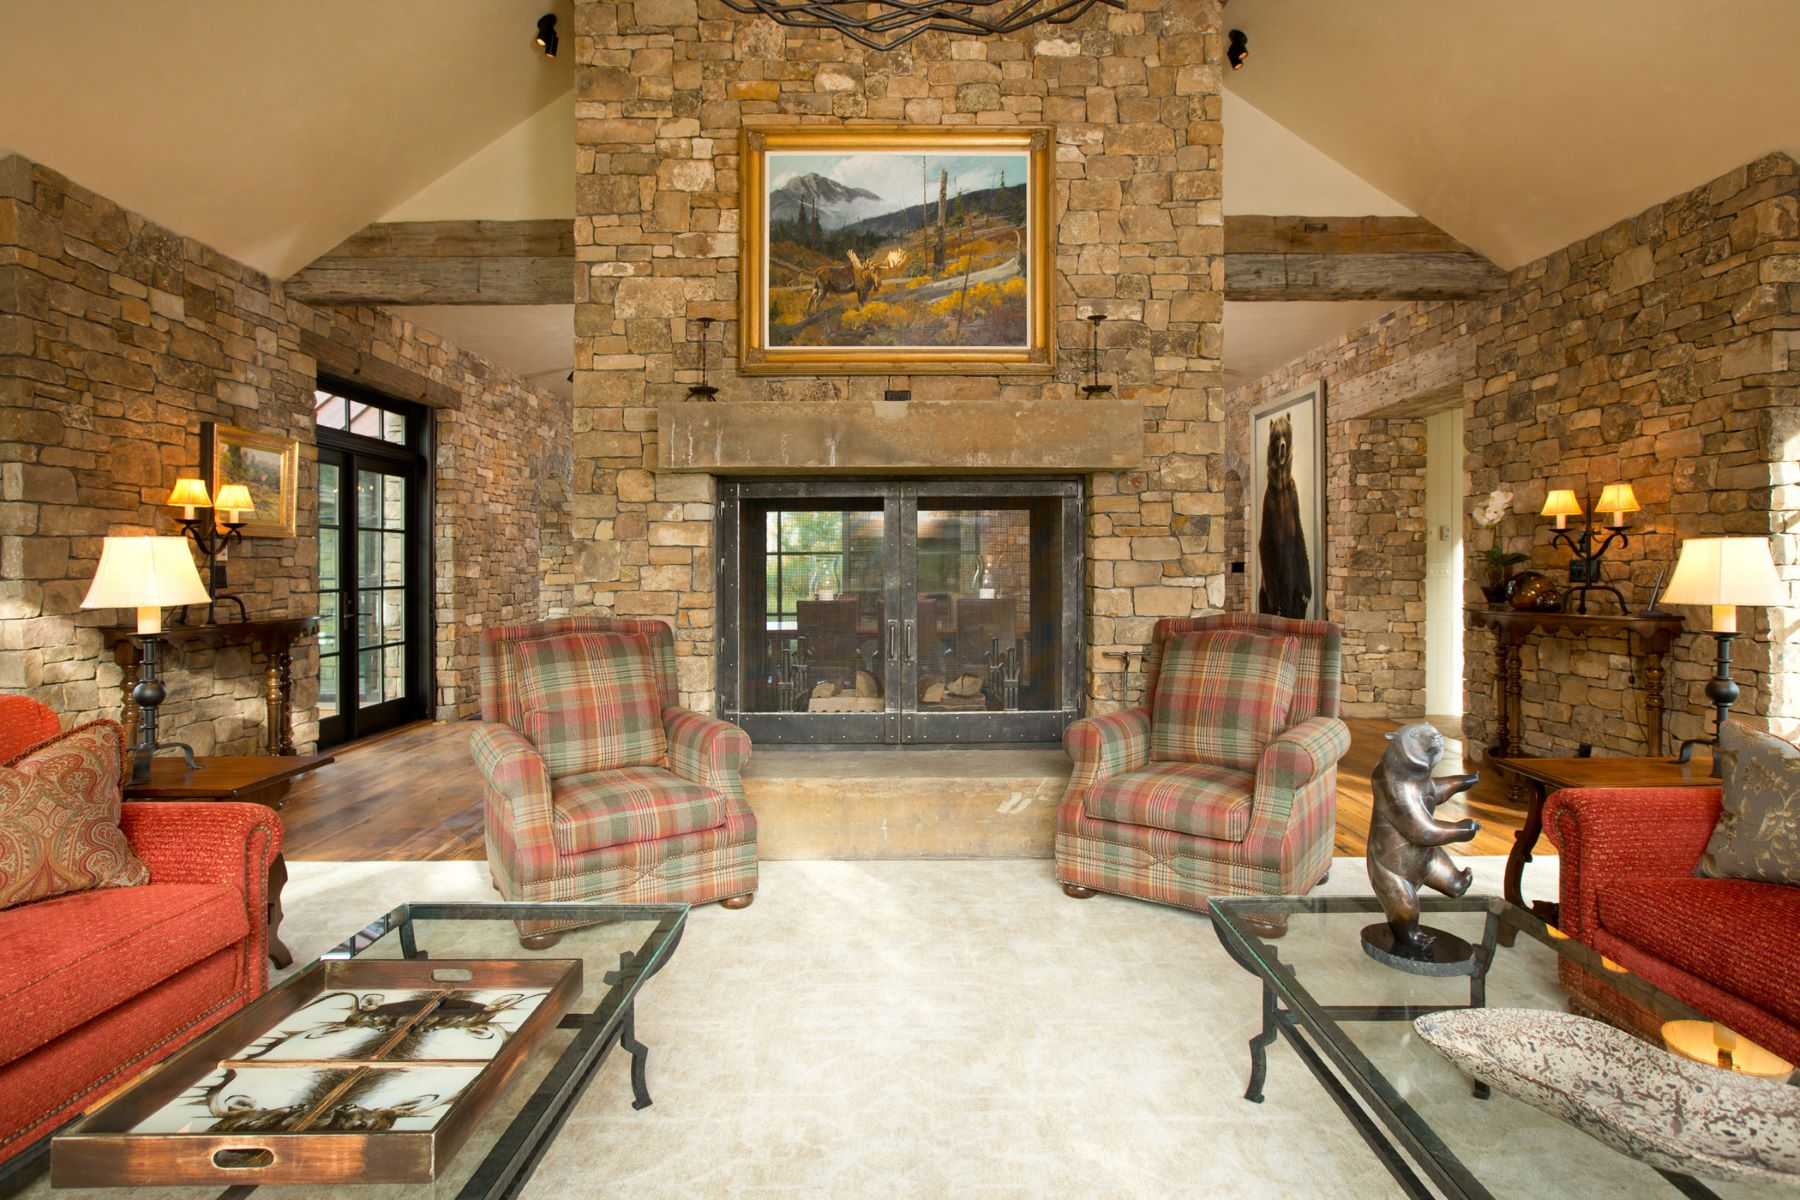 Additional photo for property listing at Shooting Star Home 6940 Jensen Canyon Rd Teton Village, Wyoming 83025 United States